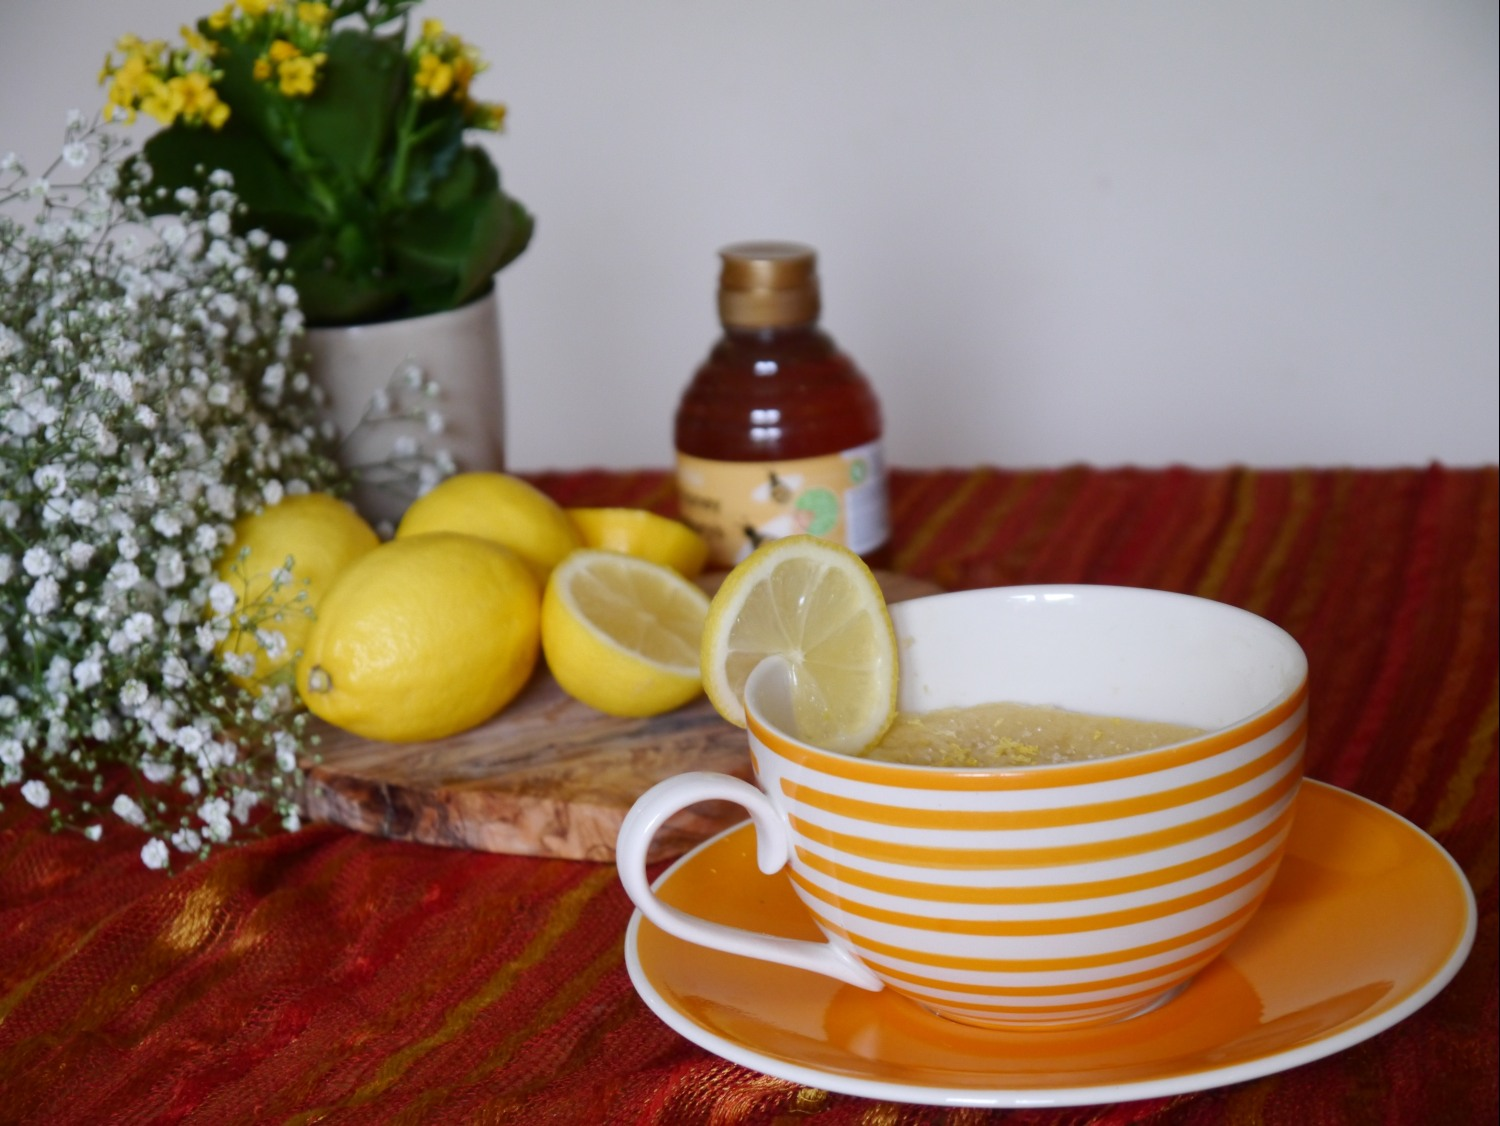 Microwave Cake Recipes Lemon: Honey And Lemon Microwave Cake In A Cup